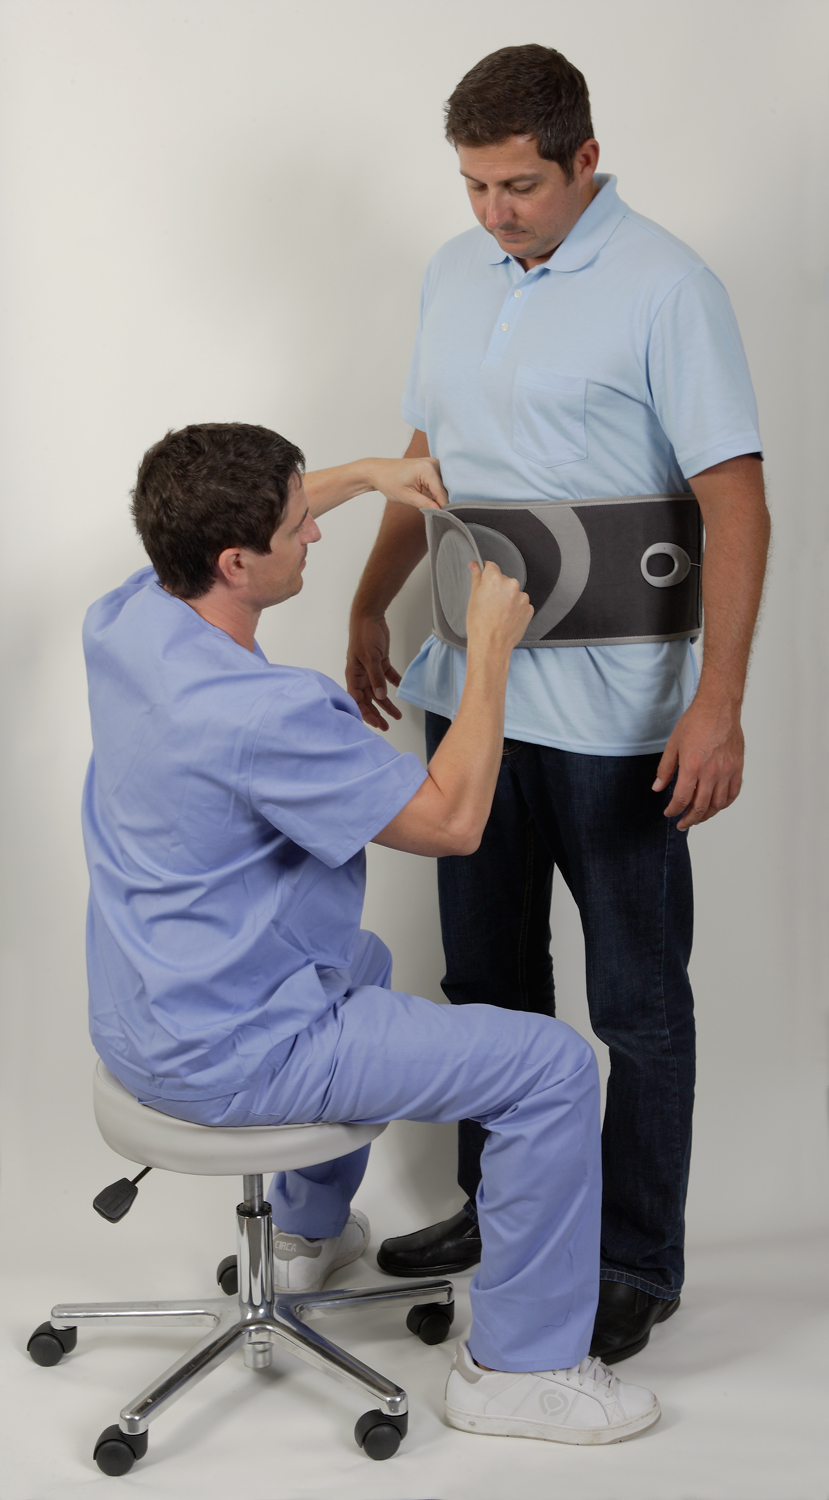 Miami_Lumbar_Medical_2.jpg